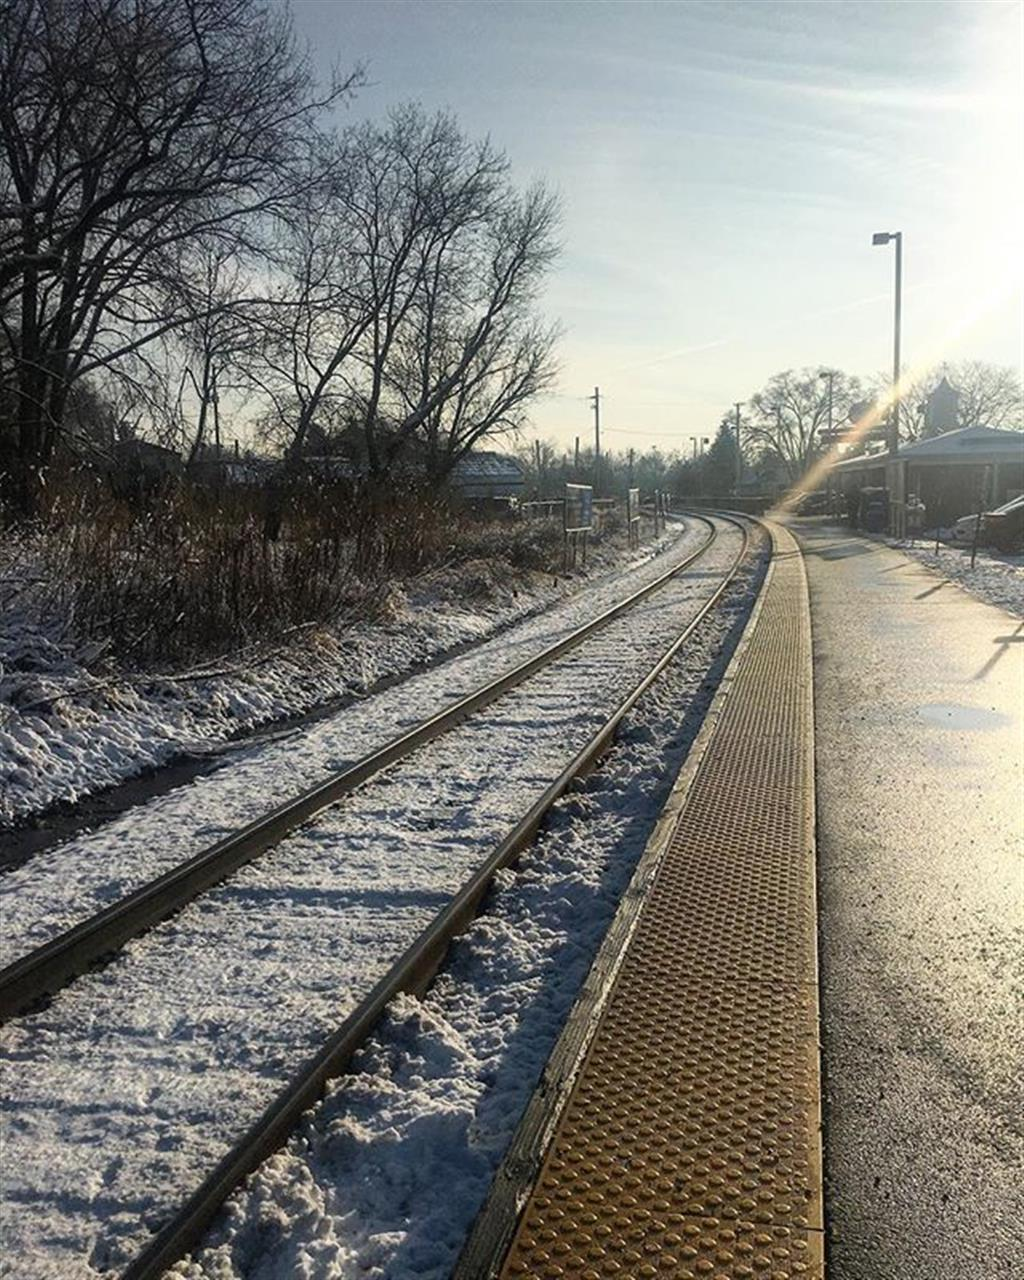 Snowfall and rain tracks. The promise of a fresh start and a new journey. #chicago #libertyville #metra #train #snowfall #leadingrelocal #chicago #neighborhoods #bairdwarner